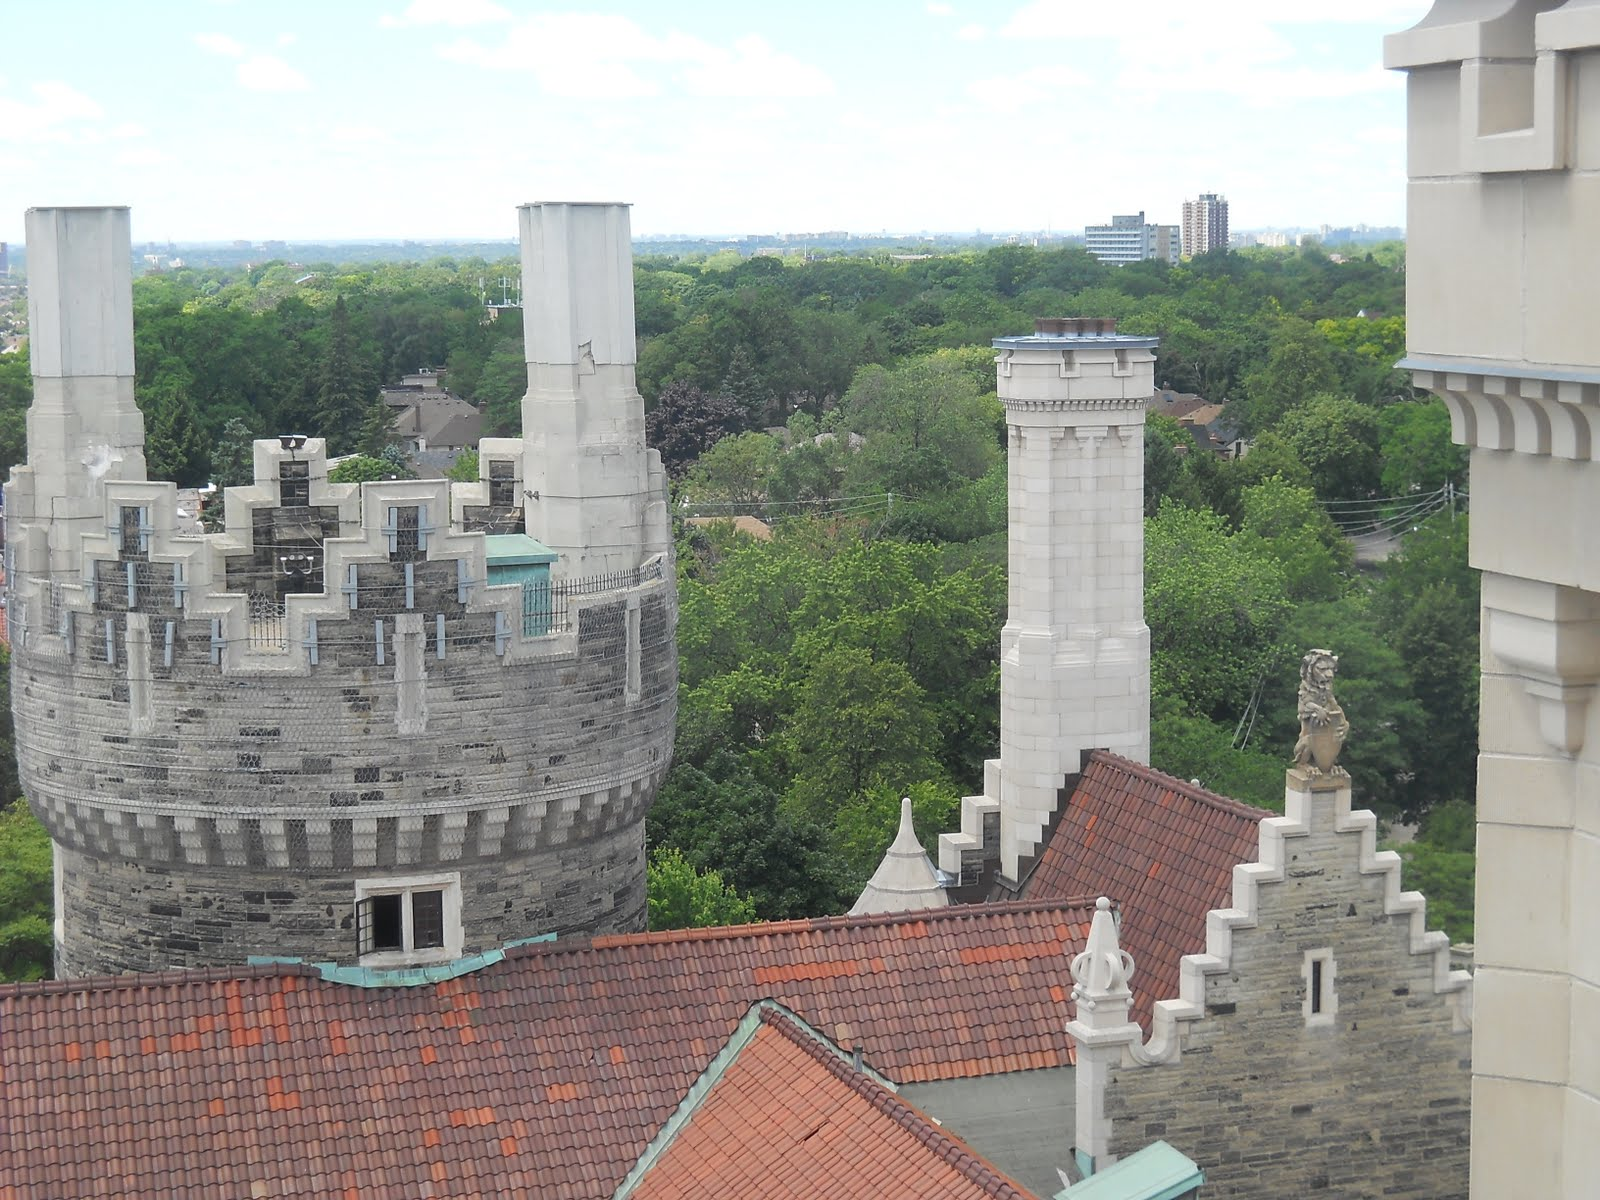 Casa loma a castle in toronto riches to rags story for Casa loma mansion toronto